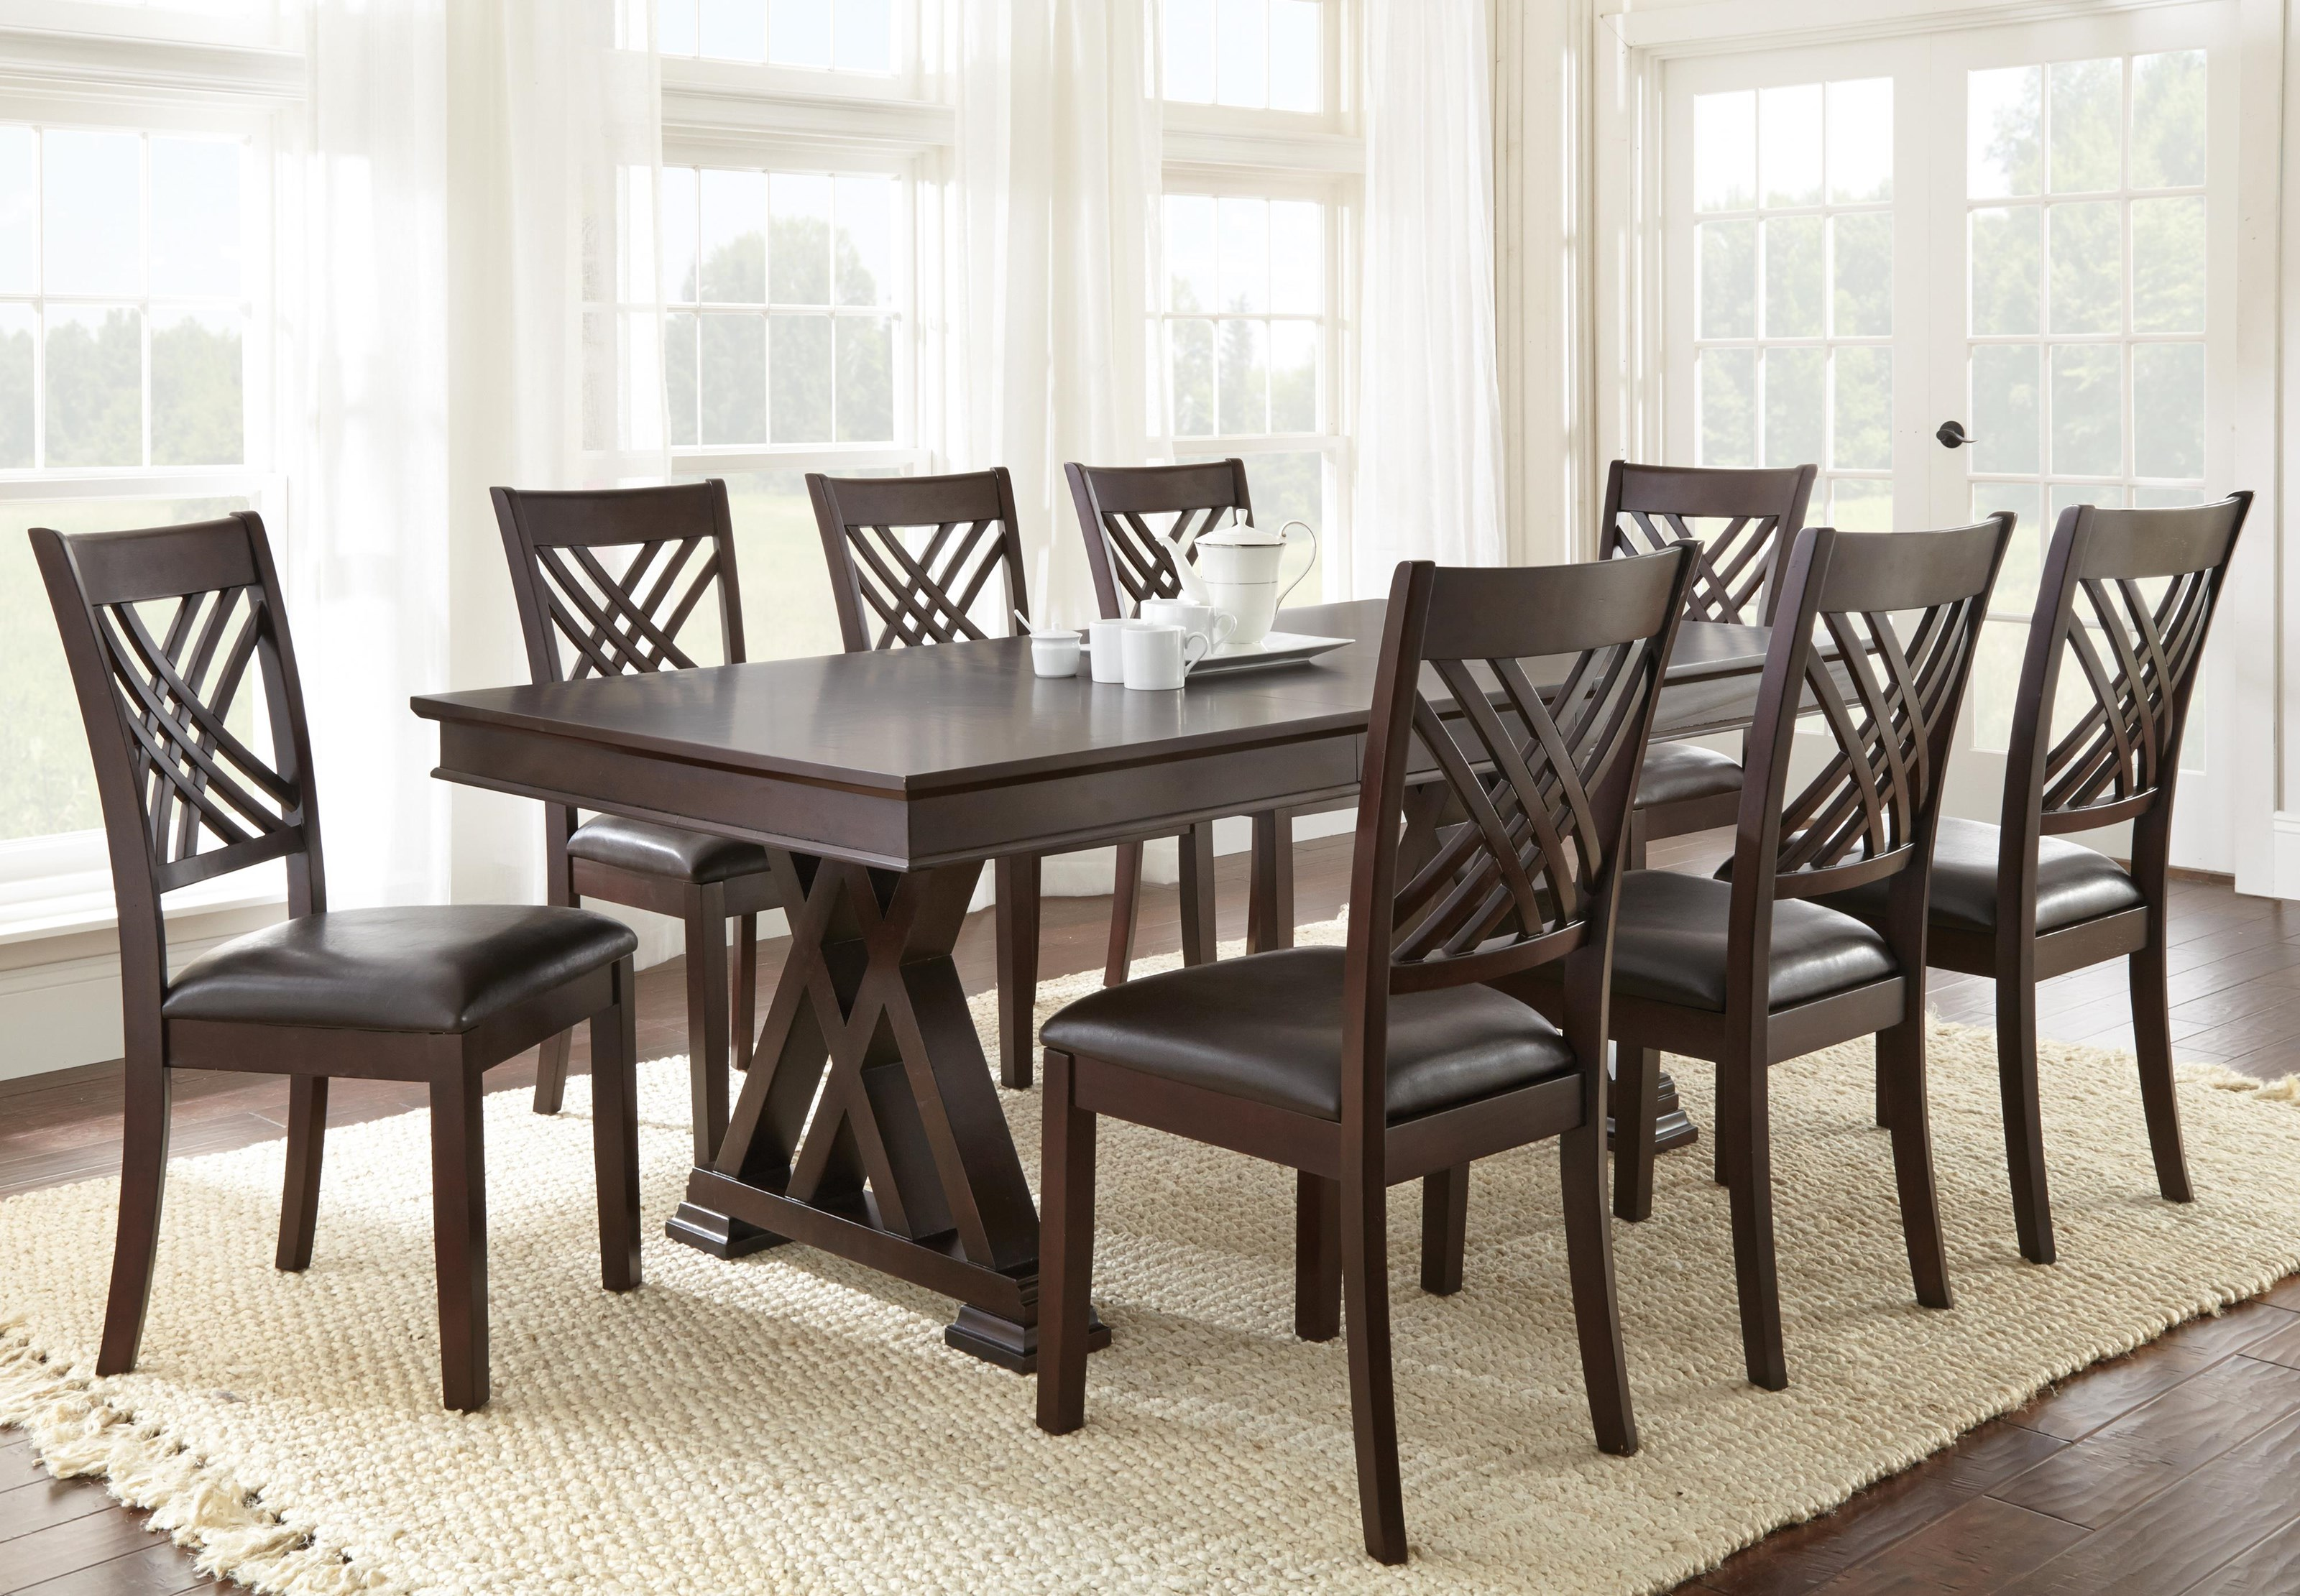 Adrian 5 Piece Table and Chair Set by Steve Silver at Wayside Furniture